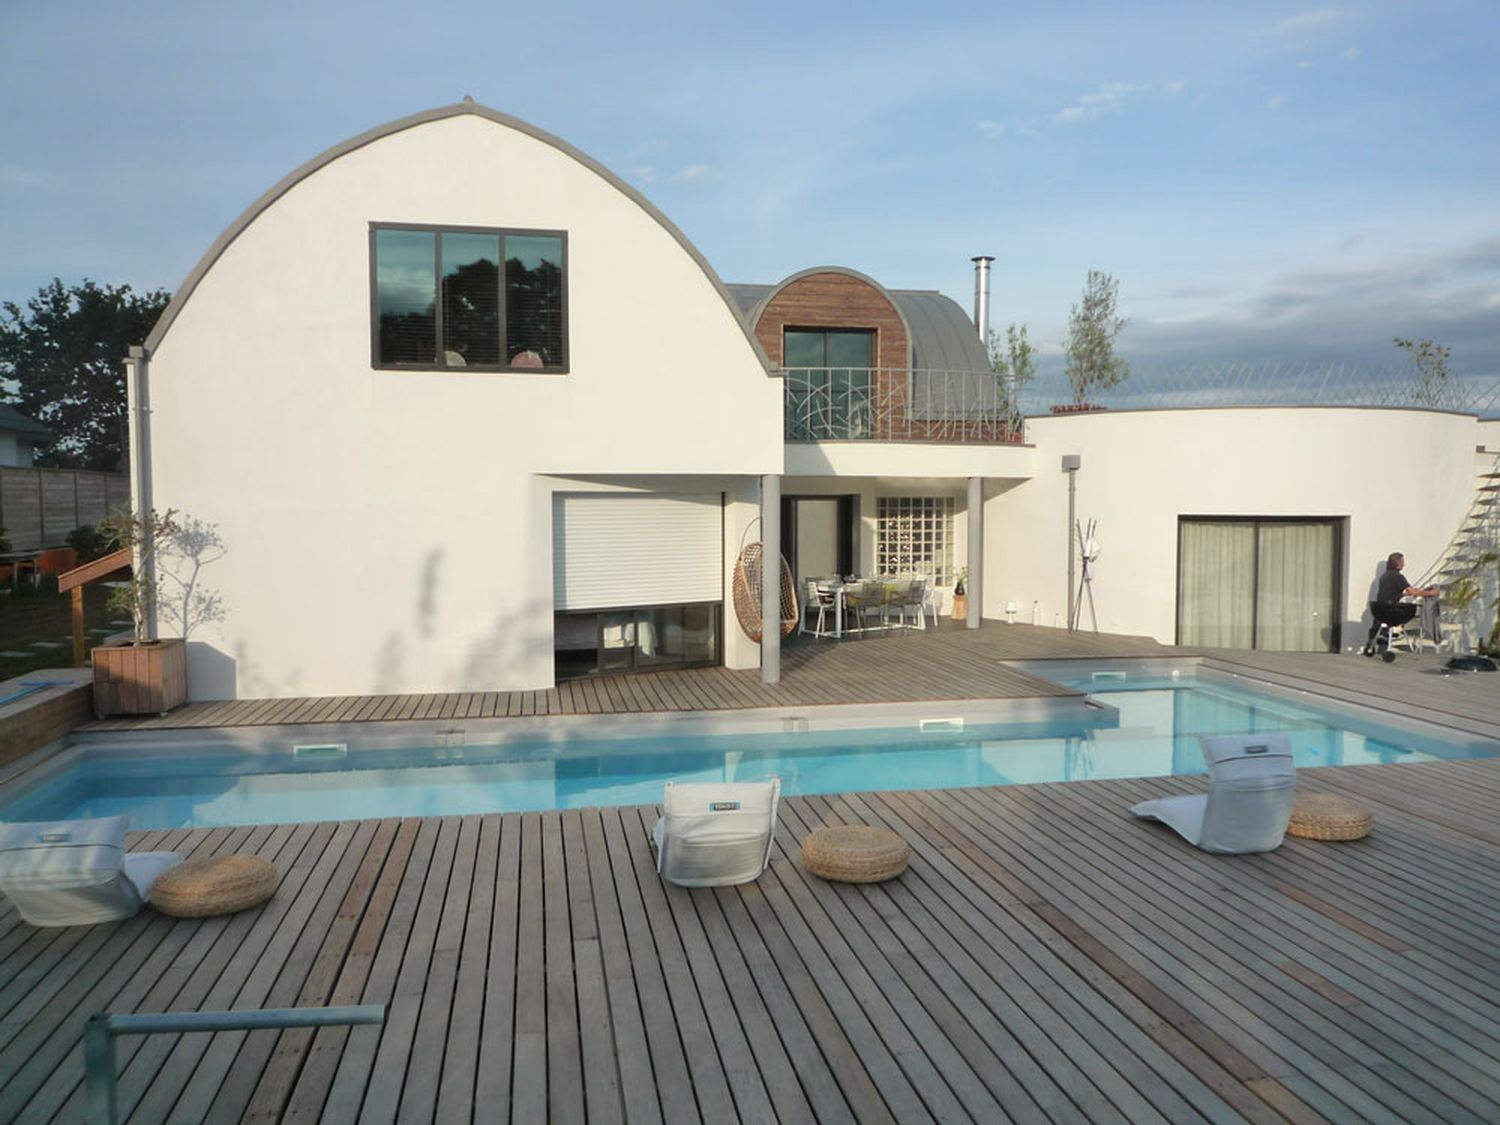 Villa-contemporaine-toiture-zinc-Architecte-à-Vannes-16